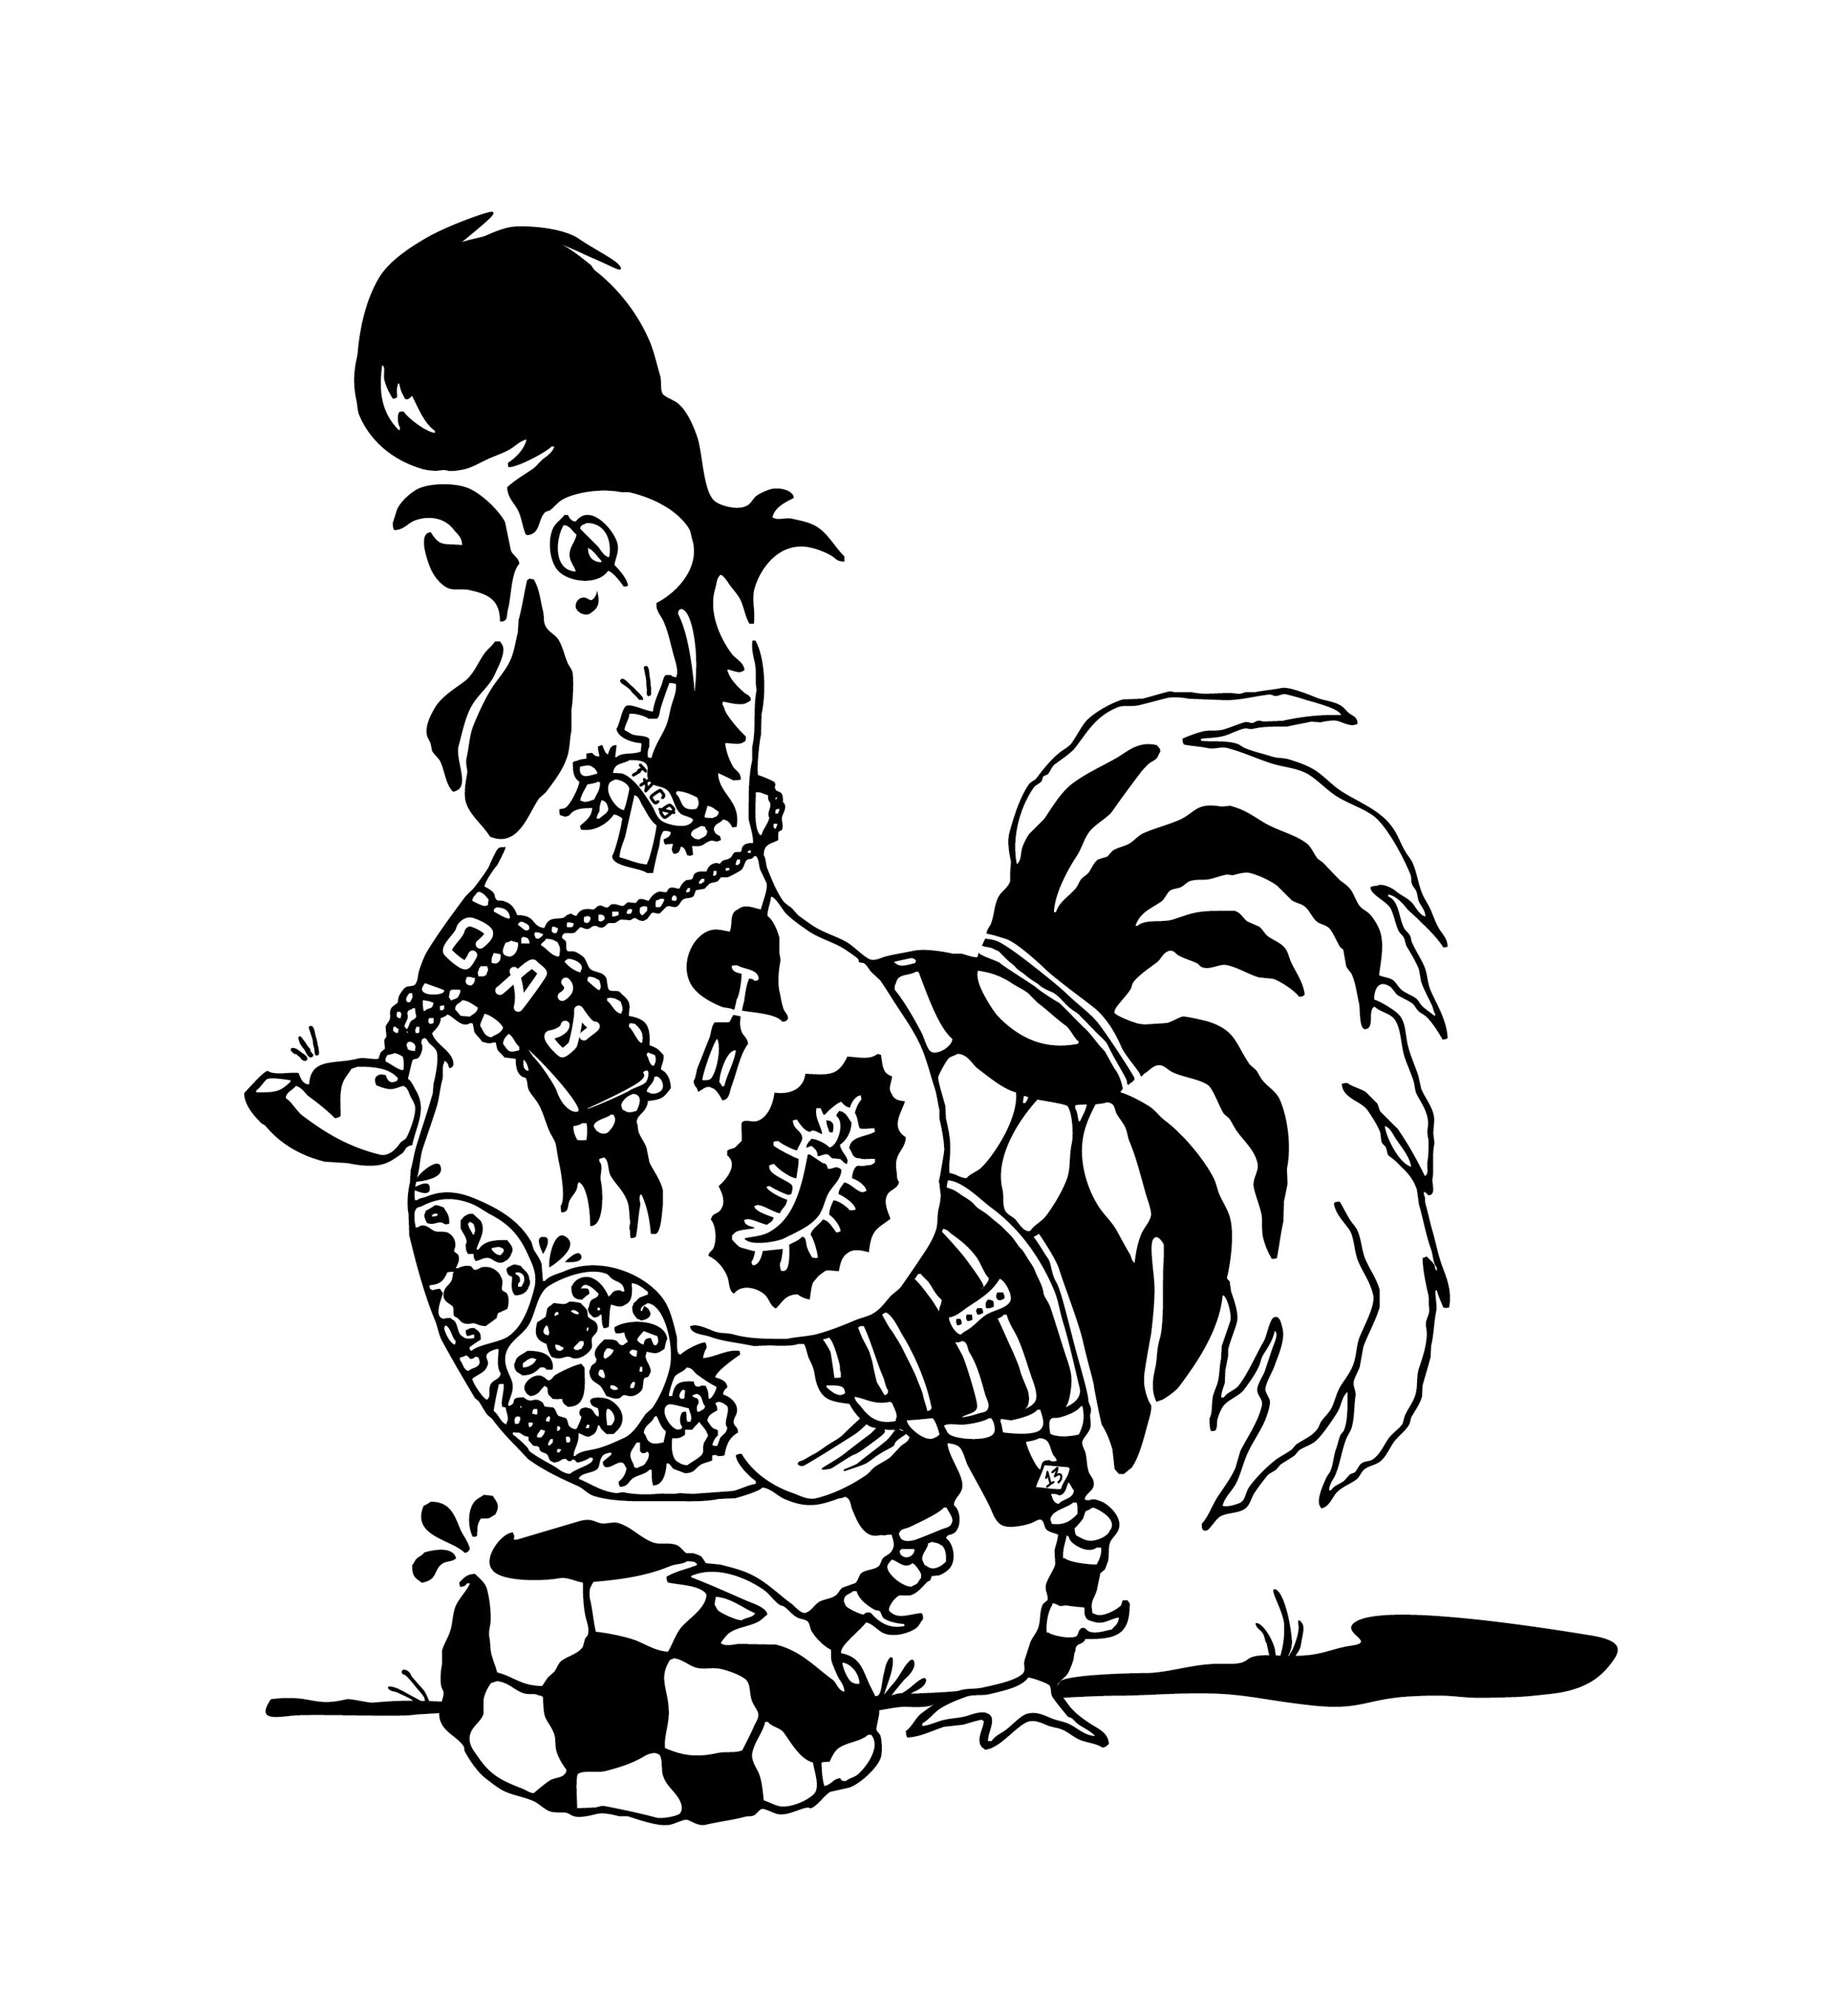 soccer-rooster-picas-design